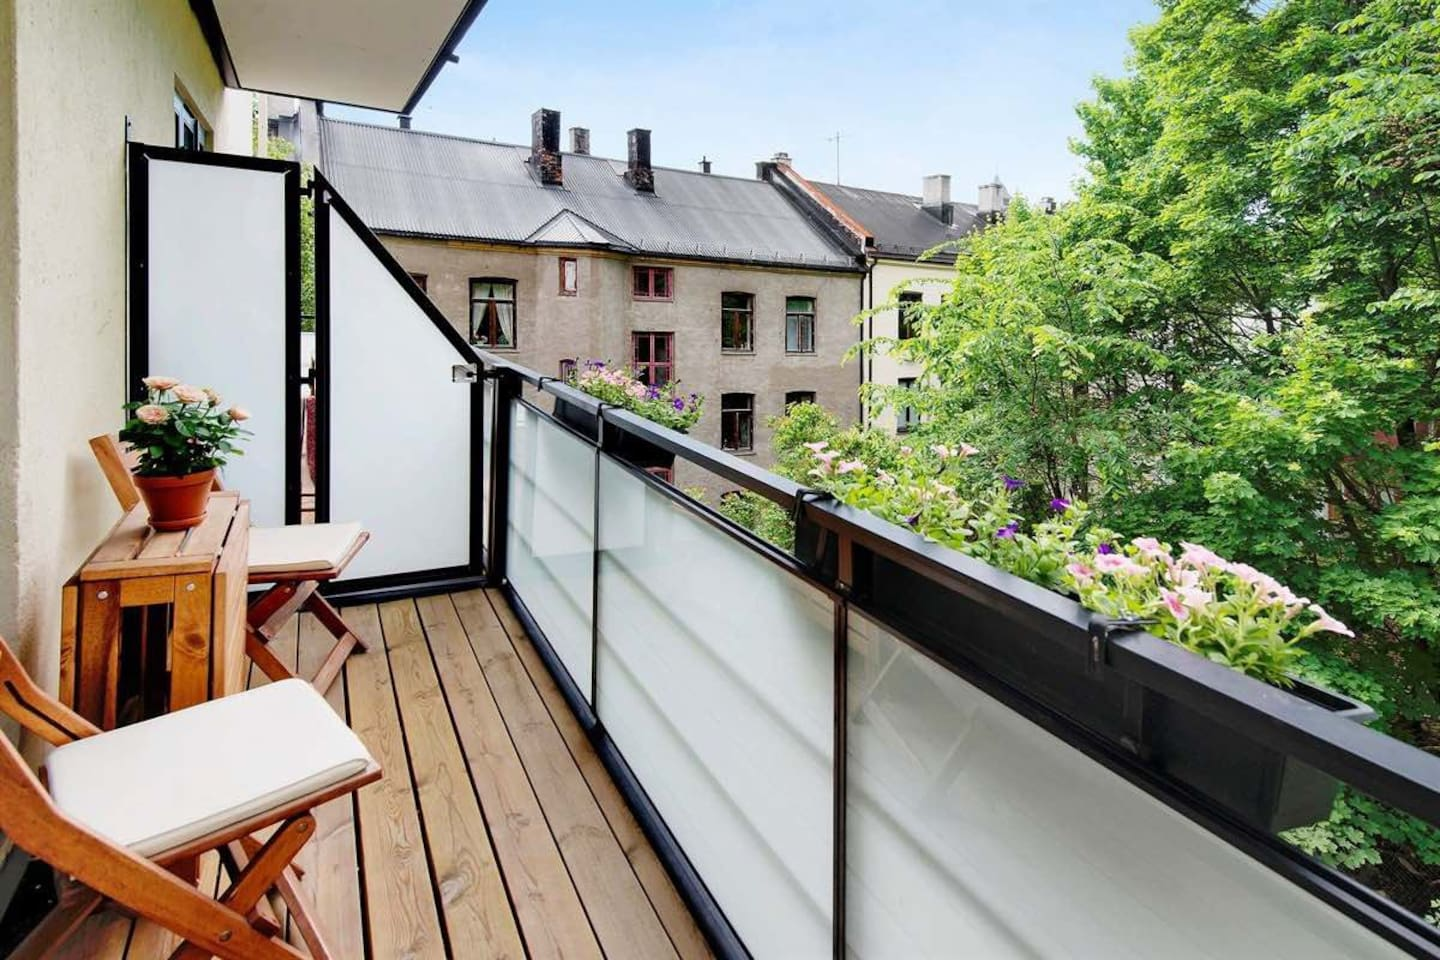 Charming balcony with grill